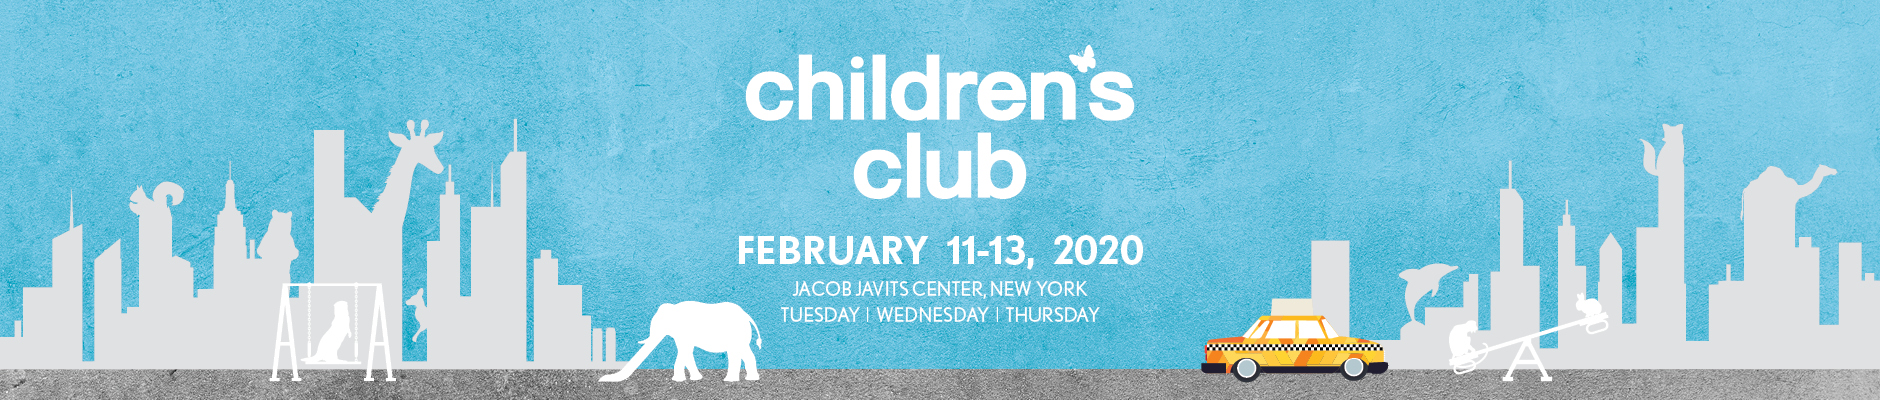 CHILDREN'S CLUB FEBRUARY 11-13, 2020